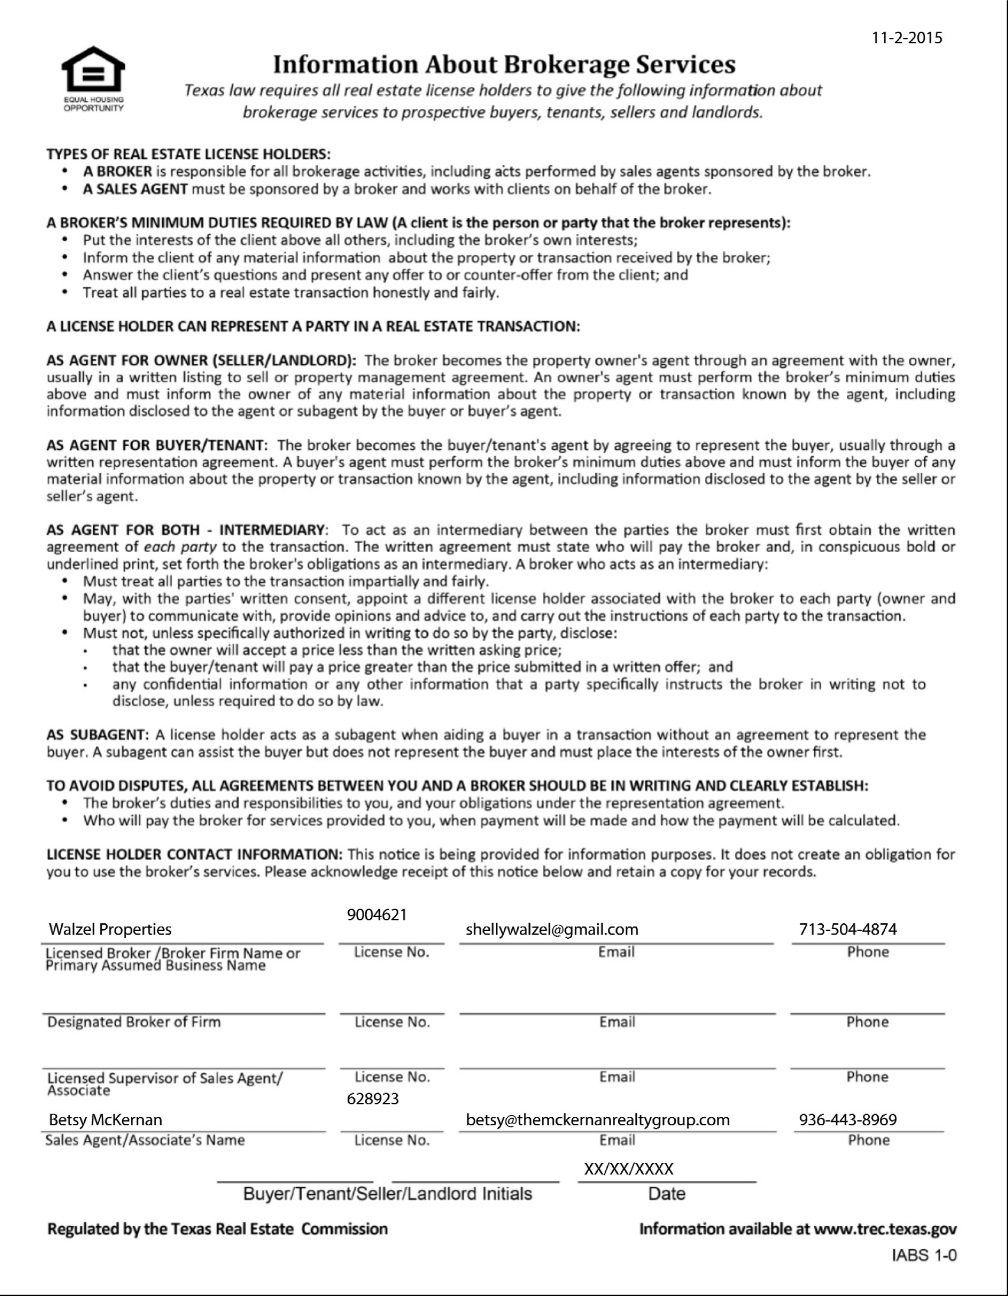 Texas Real Estate Commission (TREC) Information About Brokerage Services Form-8